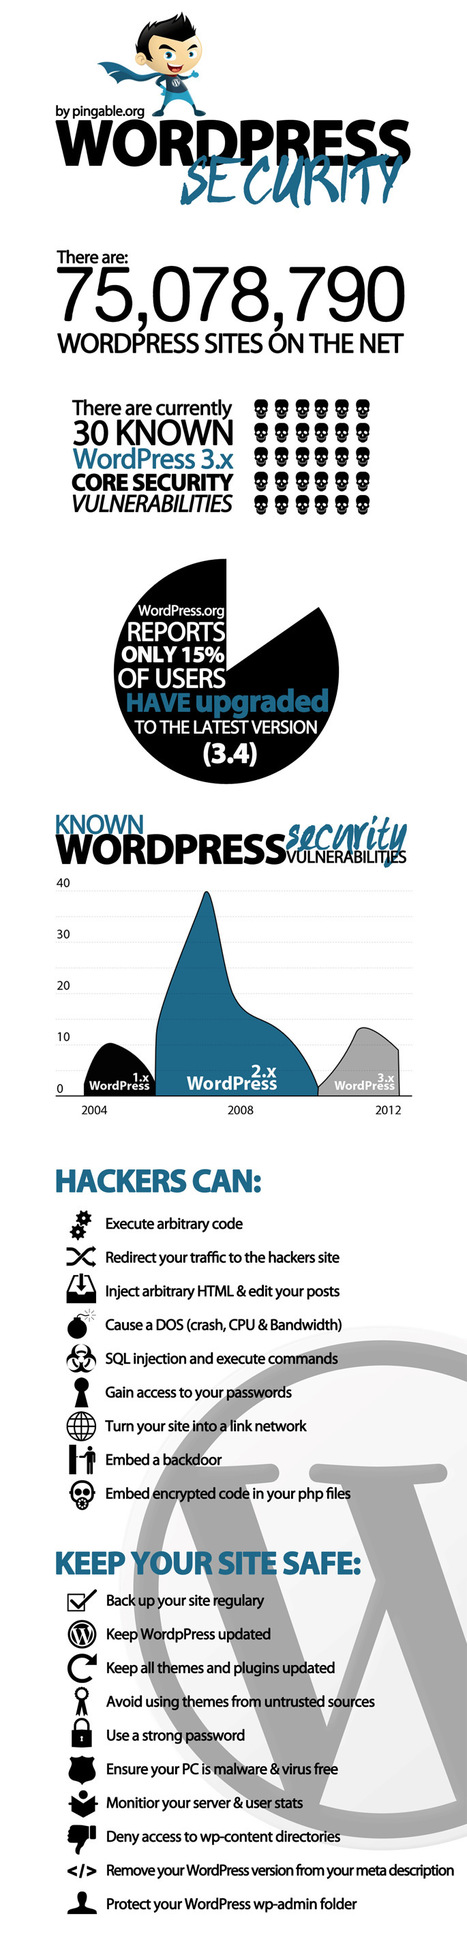 WordPress Security #infographic via @BerriePelser | WordPress Google SEO and Social Media | Scoop.it